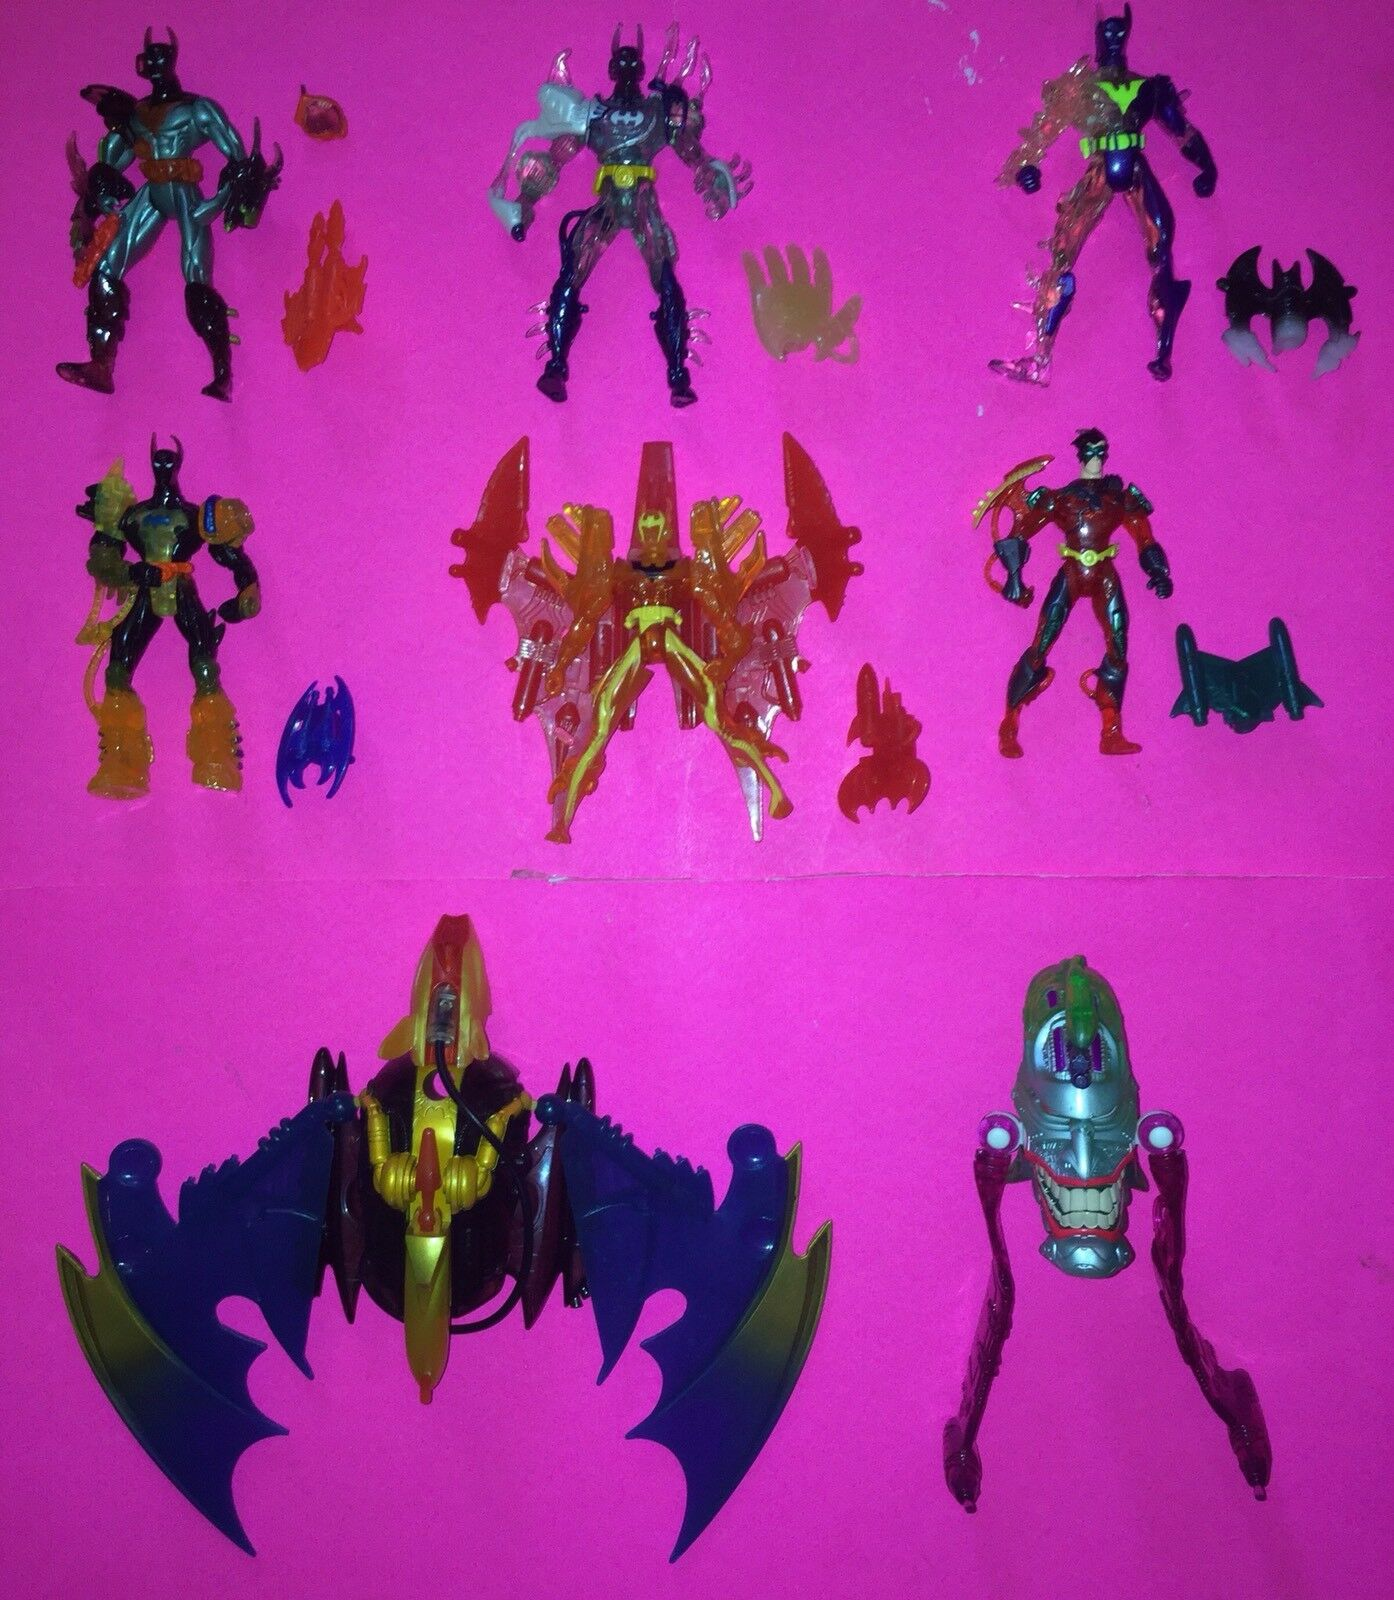 Lot of 8 Batman Beyond Batlink Action Figures (1999 Hasbro)